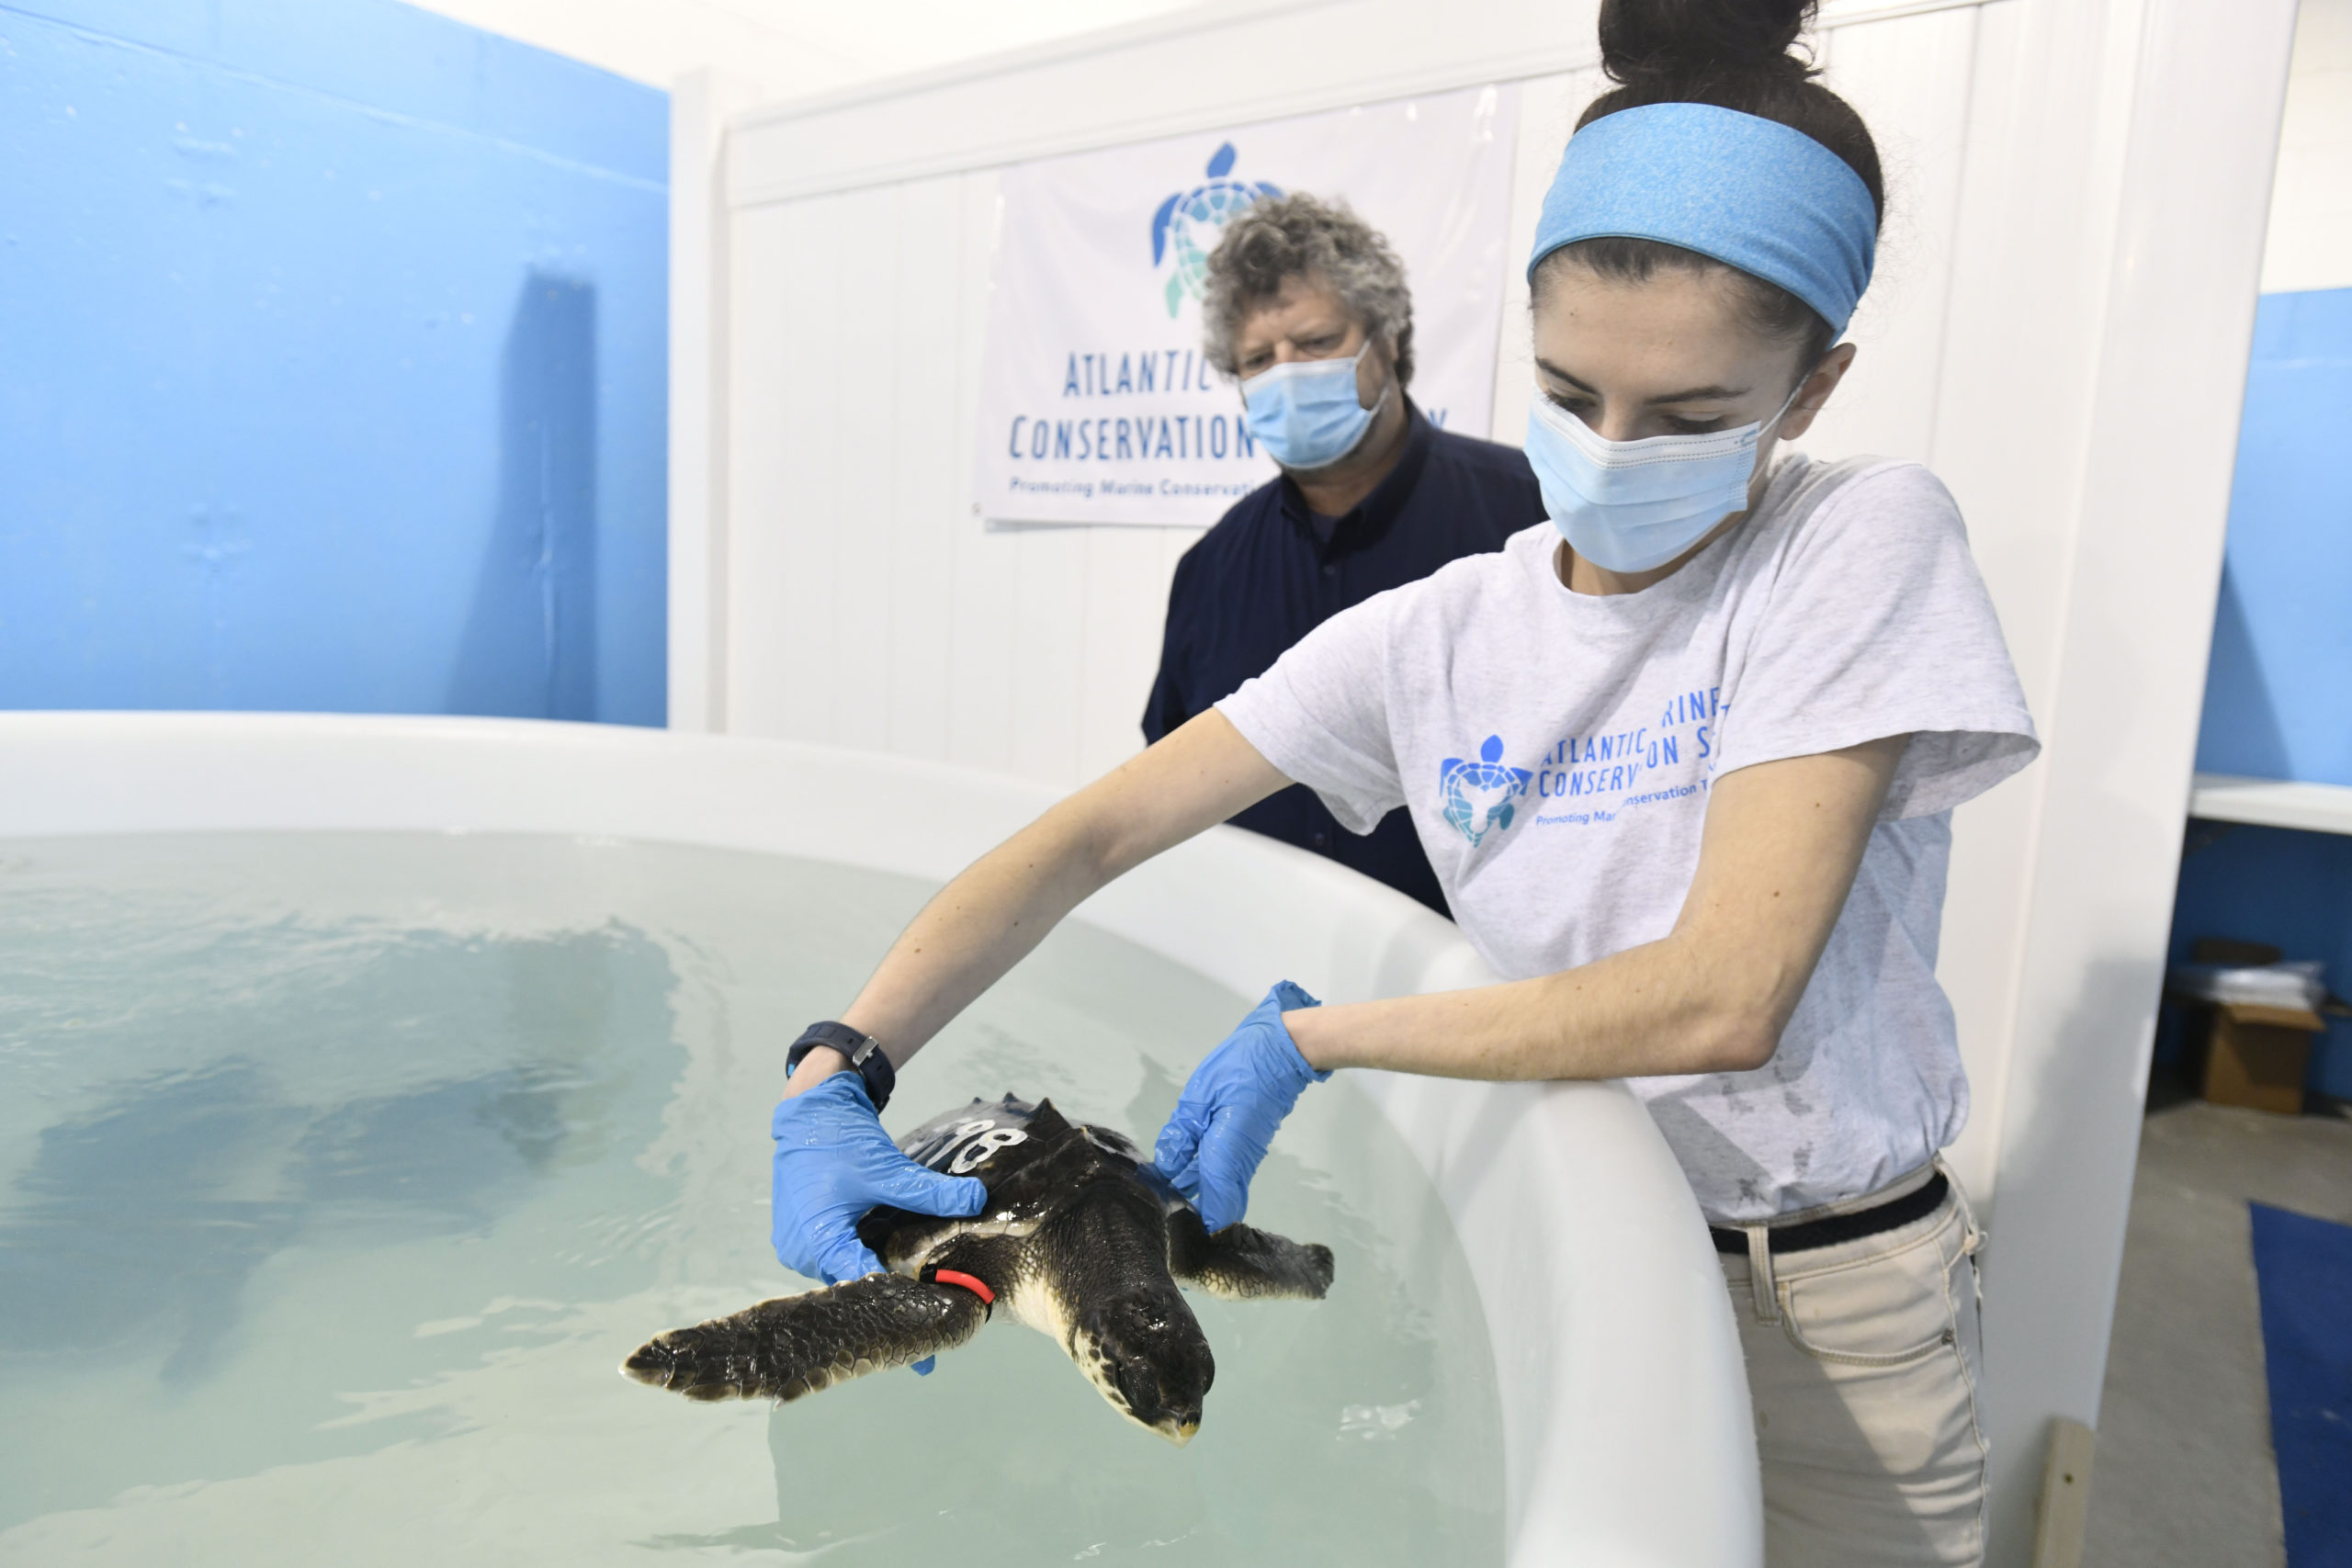 Sammi Chaves returns one of the cold stunned Kemp's ridley sea turtles residing at Atlantic Marine Conservation Society to its tank as Robert DiGiovanni looks on.  DANA SHAW